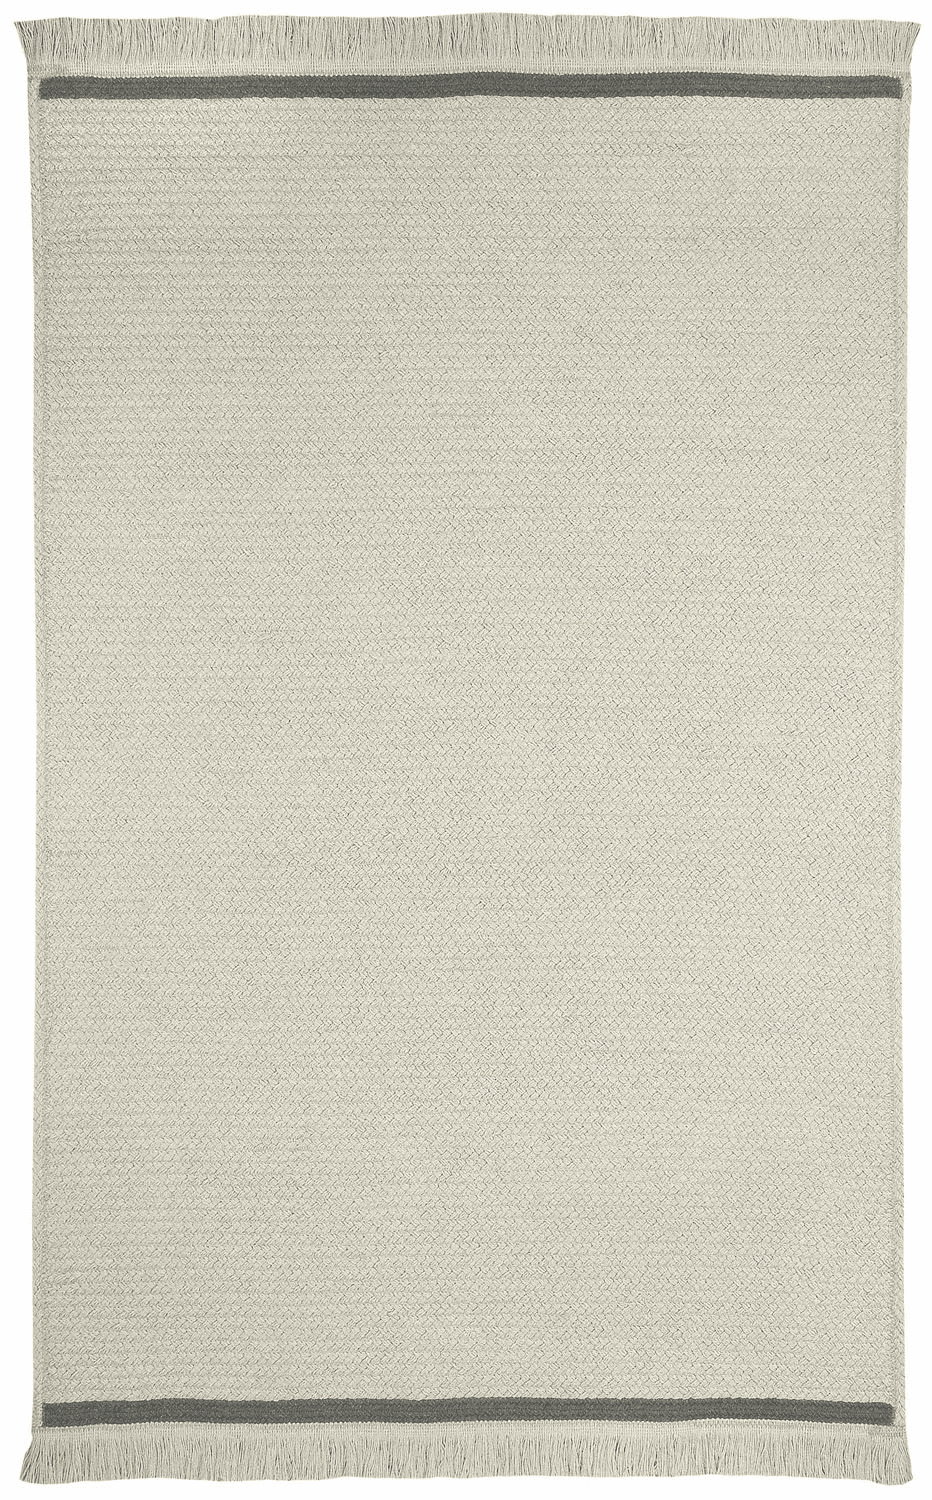 Hand-Braided Stone Smoke Rug